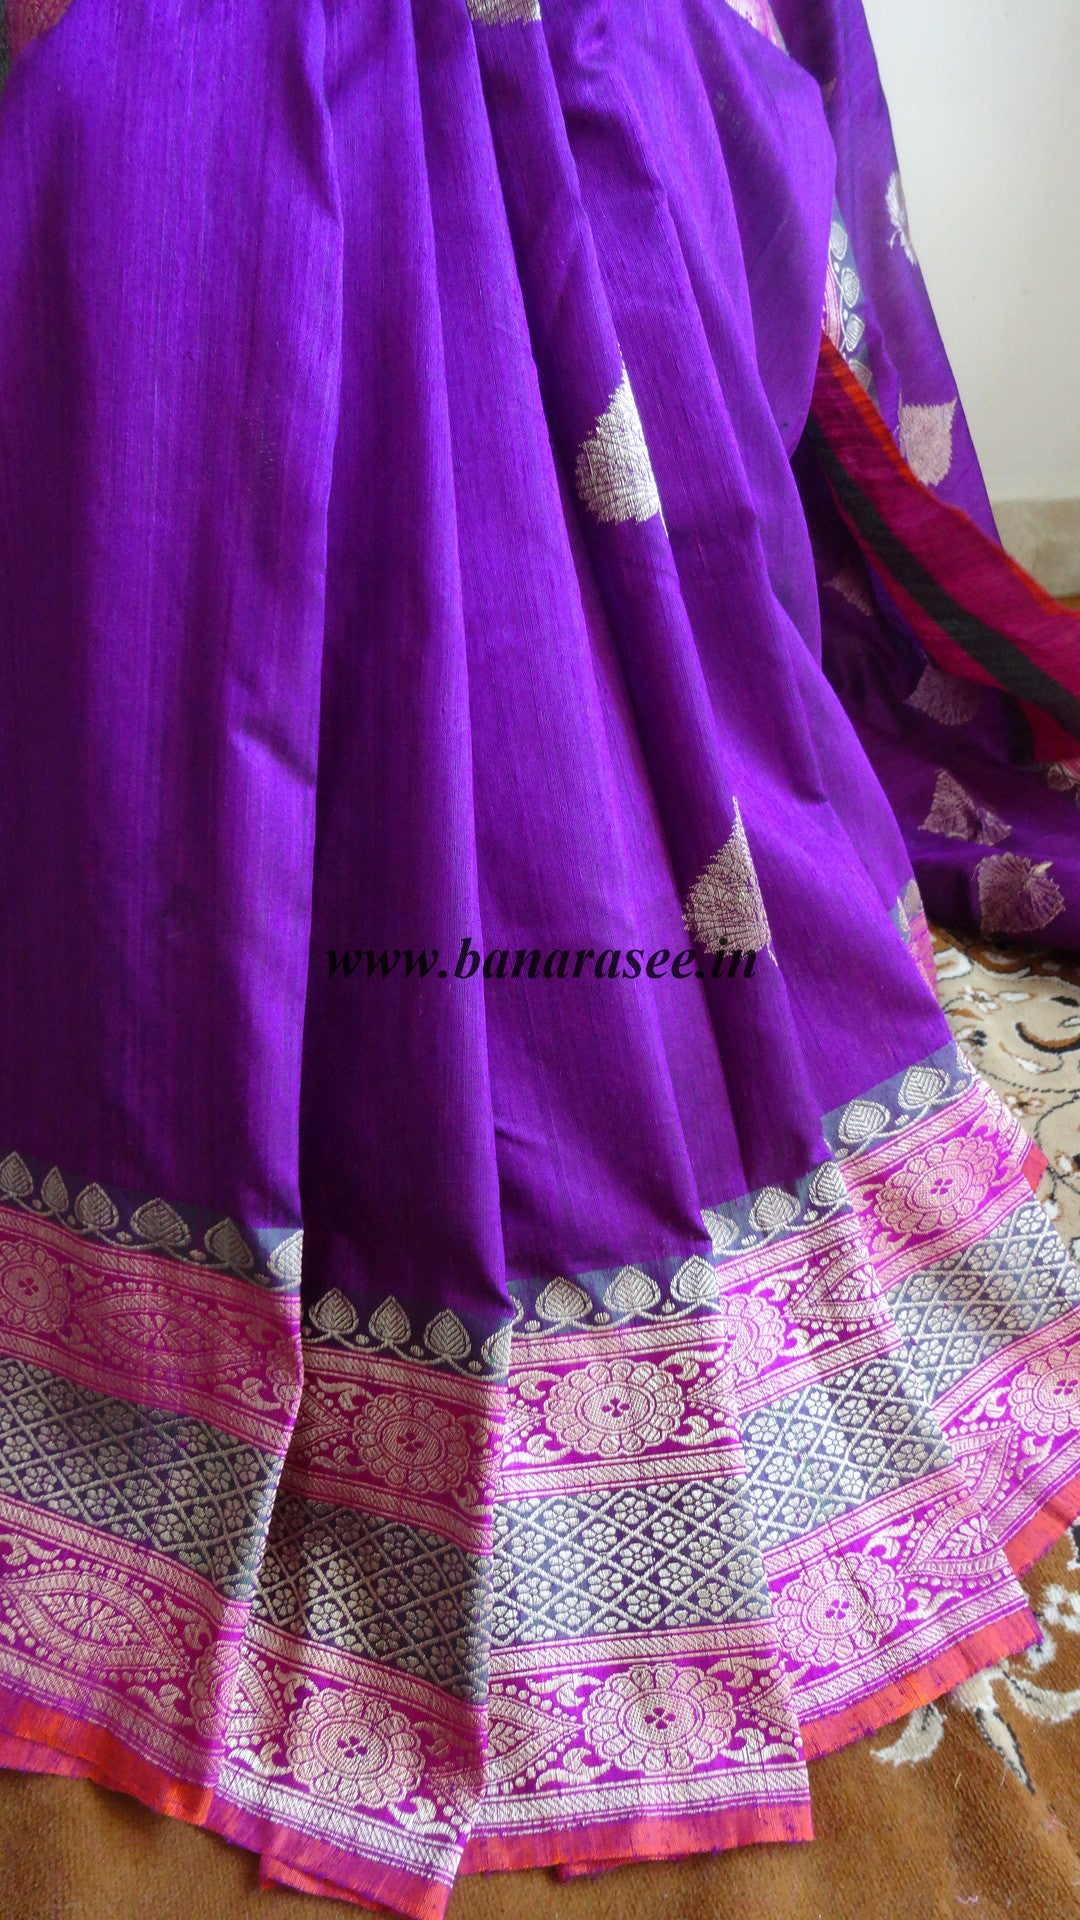 Banarasee/Banarasee Pure Handloom Dupion Silk Sari With Buta Design-Violet